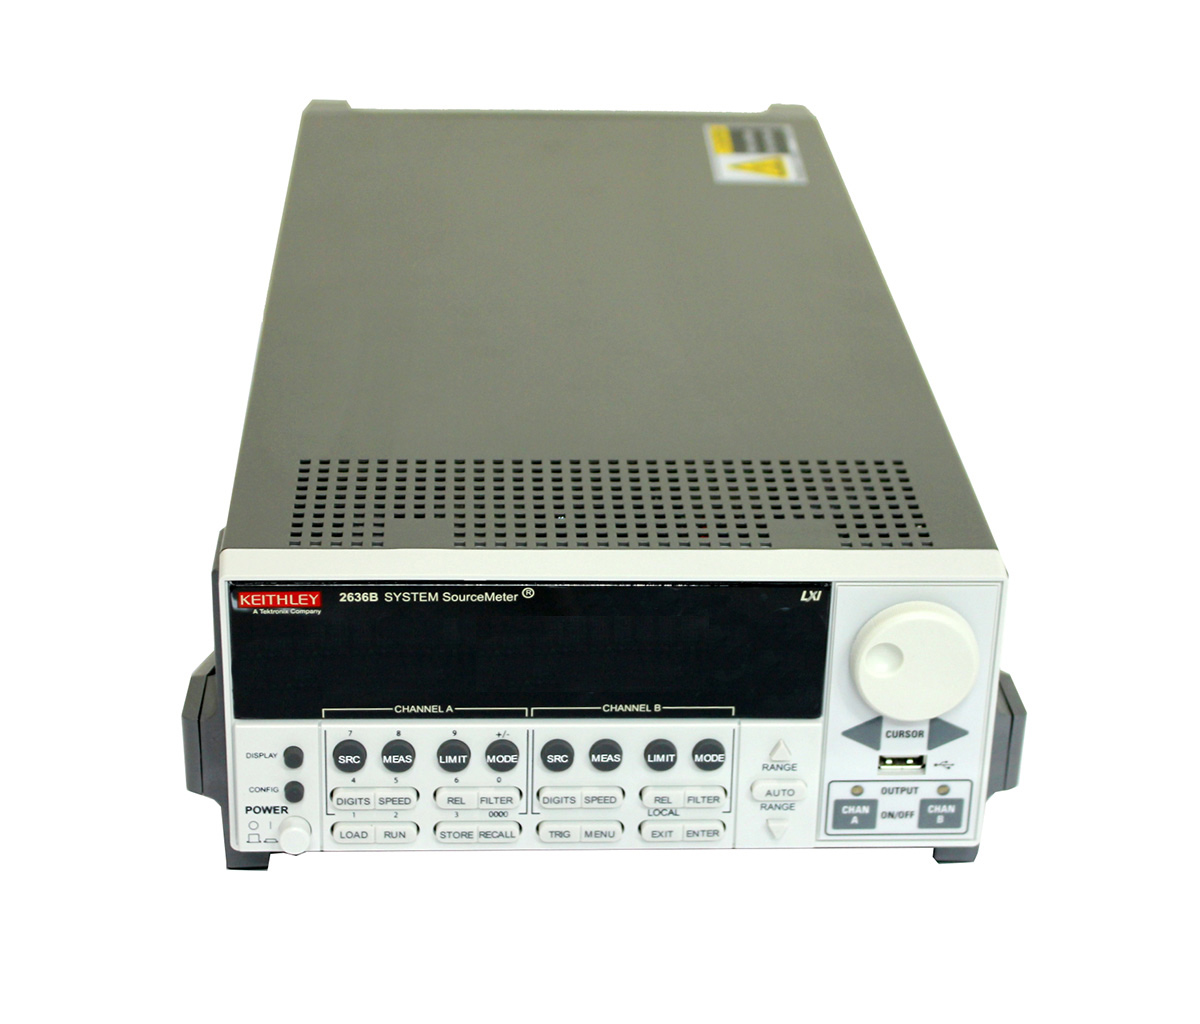 Keithley 2636B SourceMeter for Rent or Sale | TRS-RenTelco